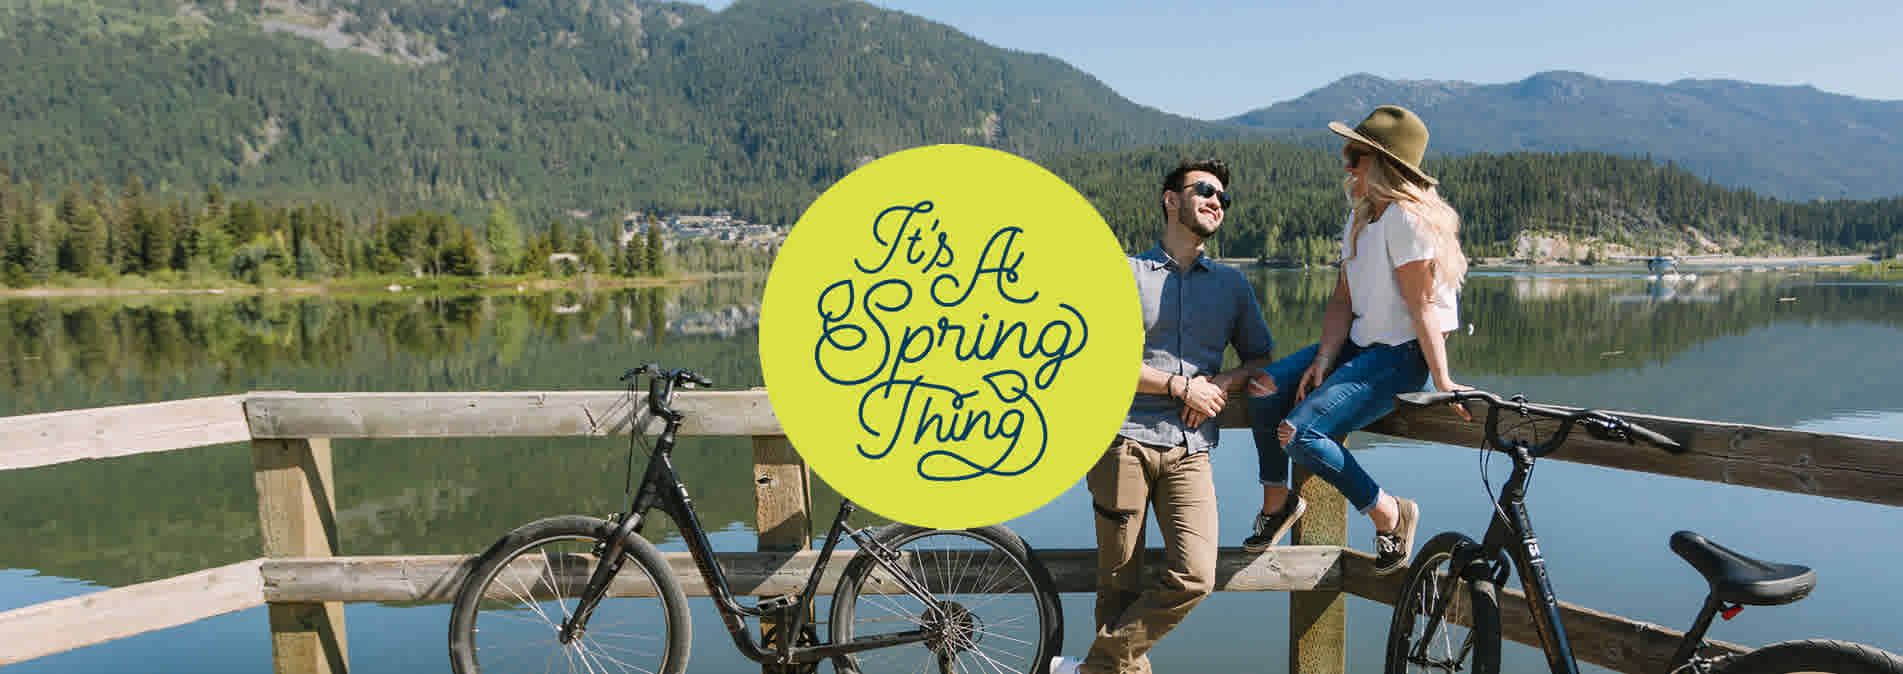 Whistler Family Spring Activity Deals